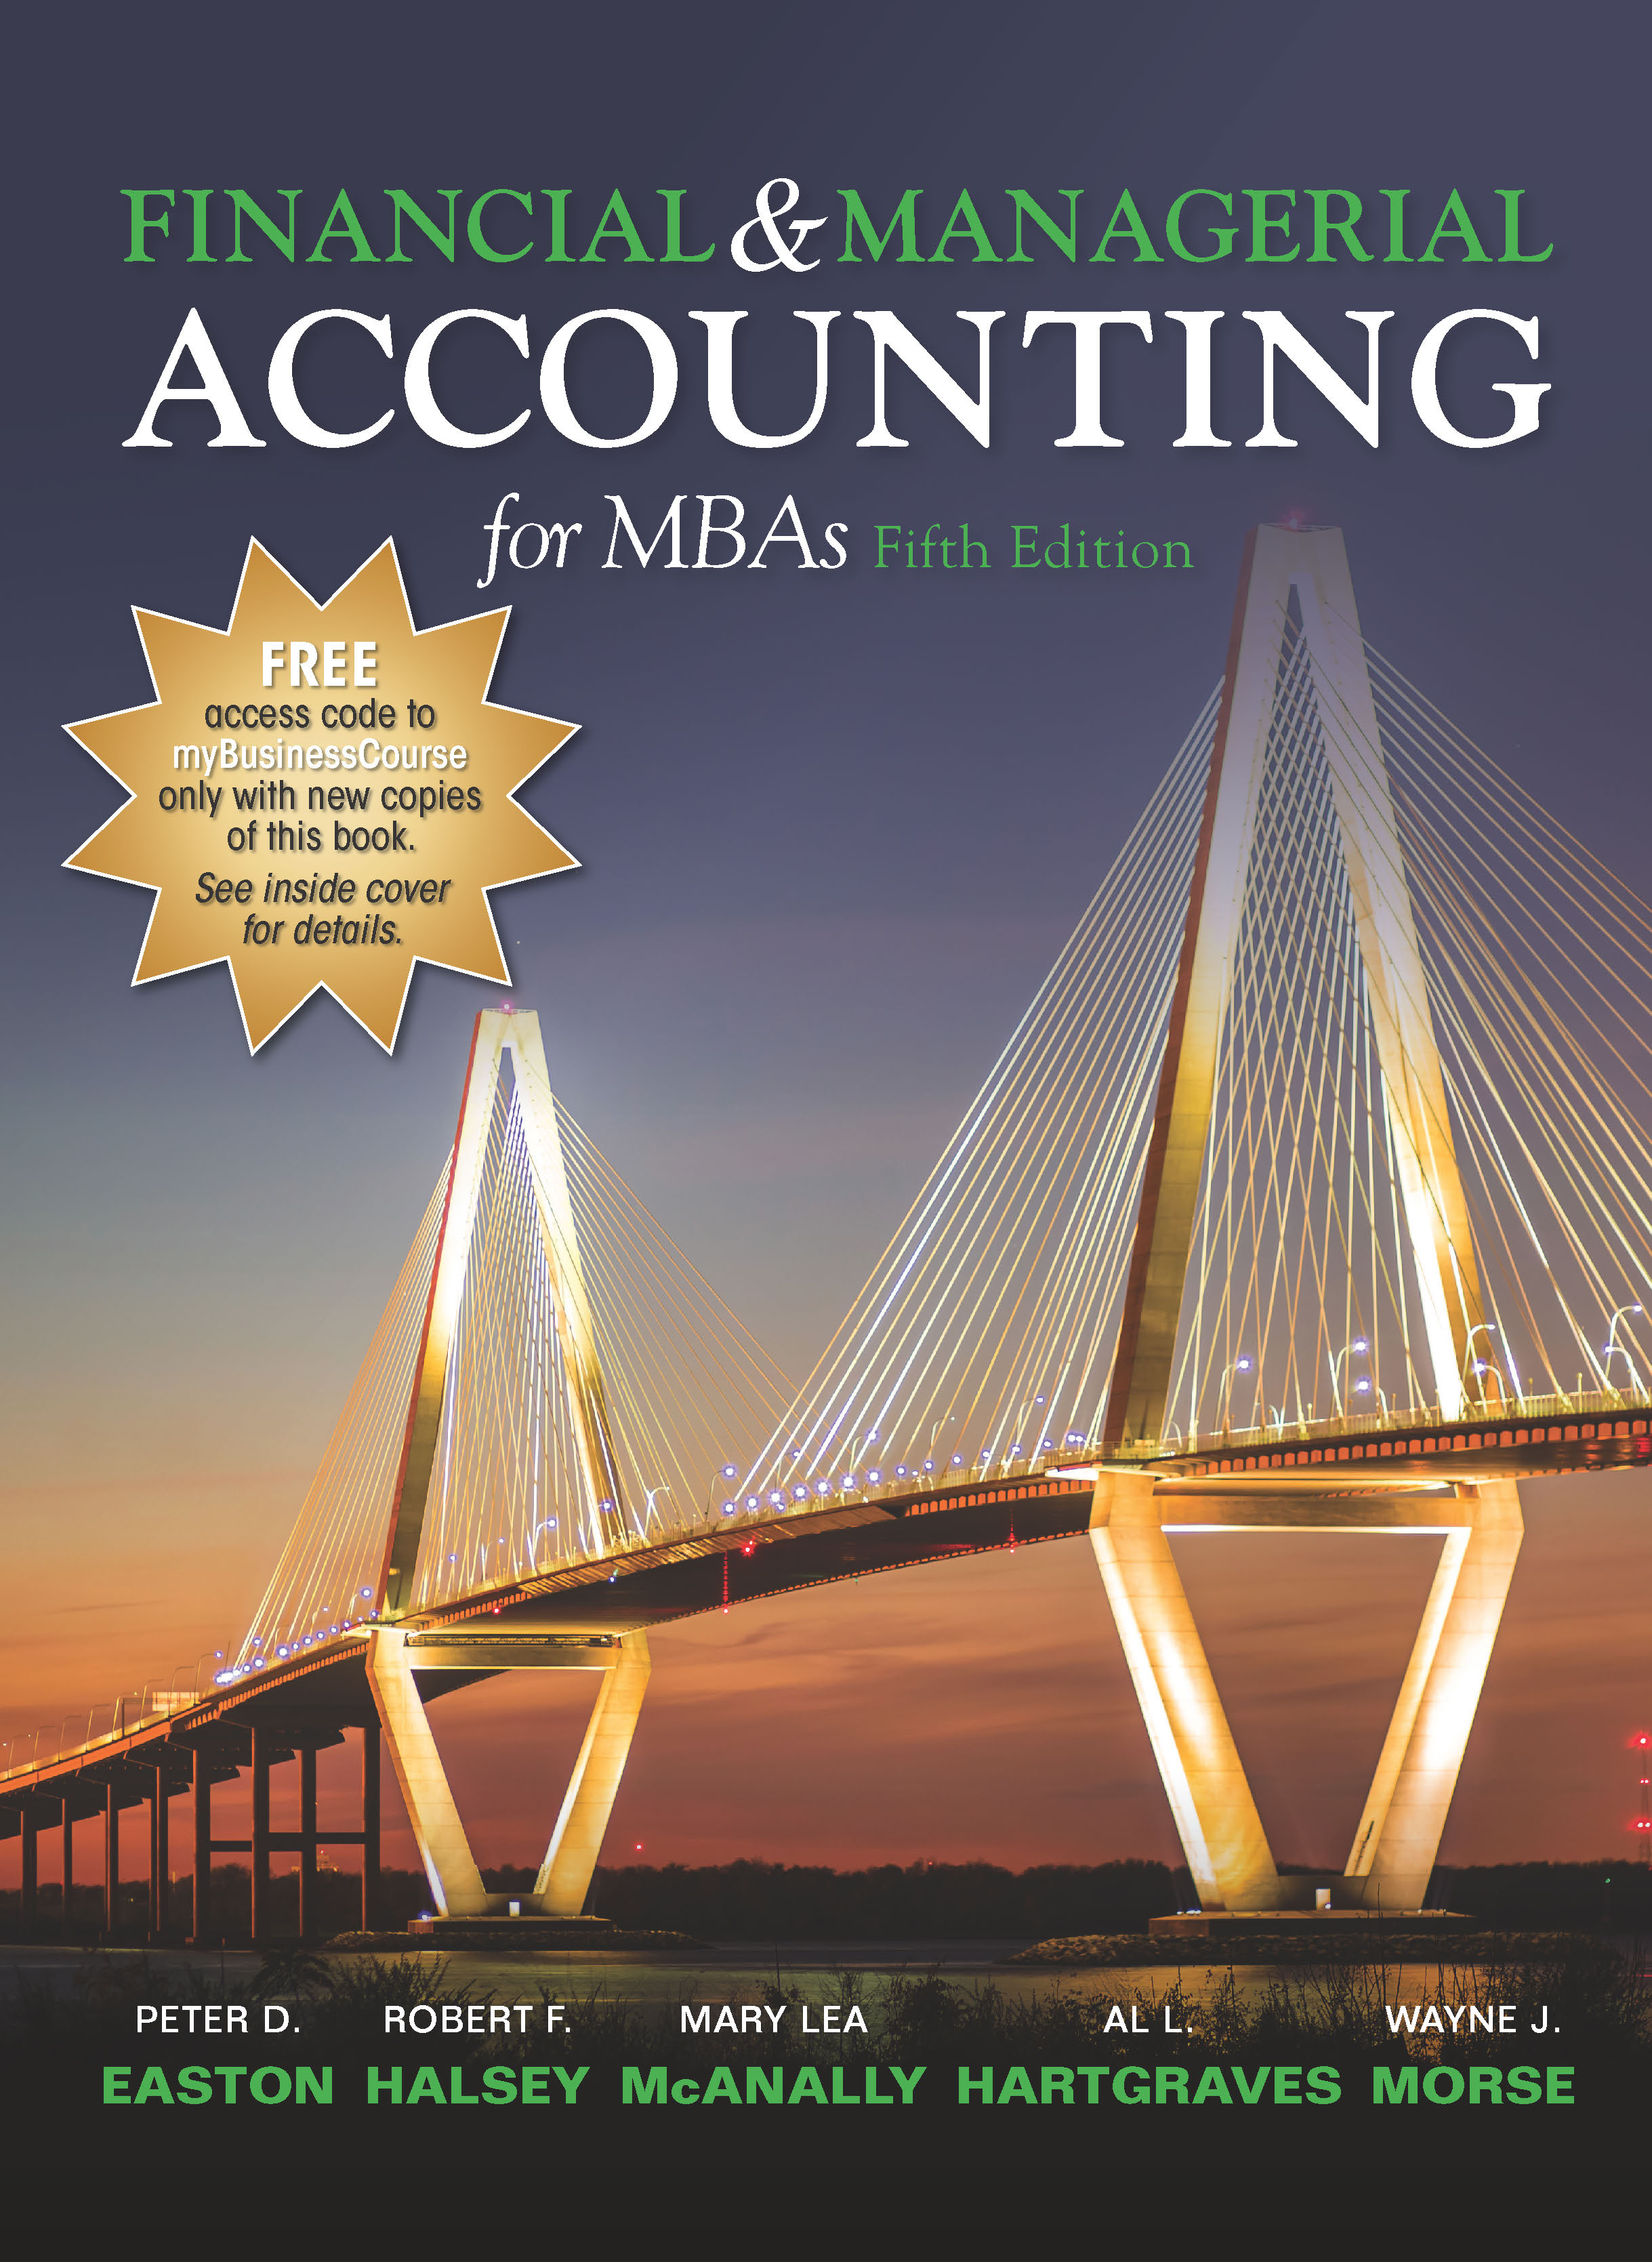 Financial & Managerial Accounting for MBAs, 5e